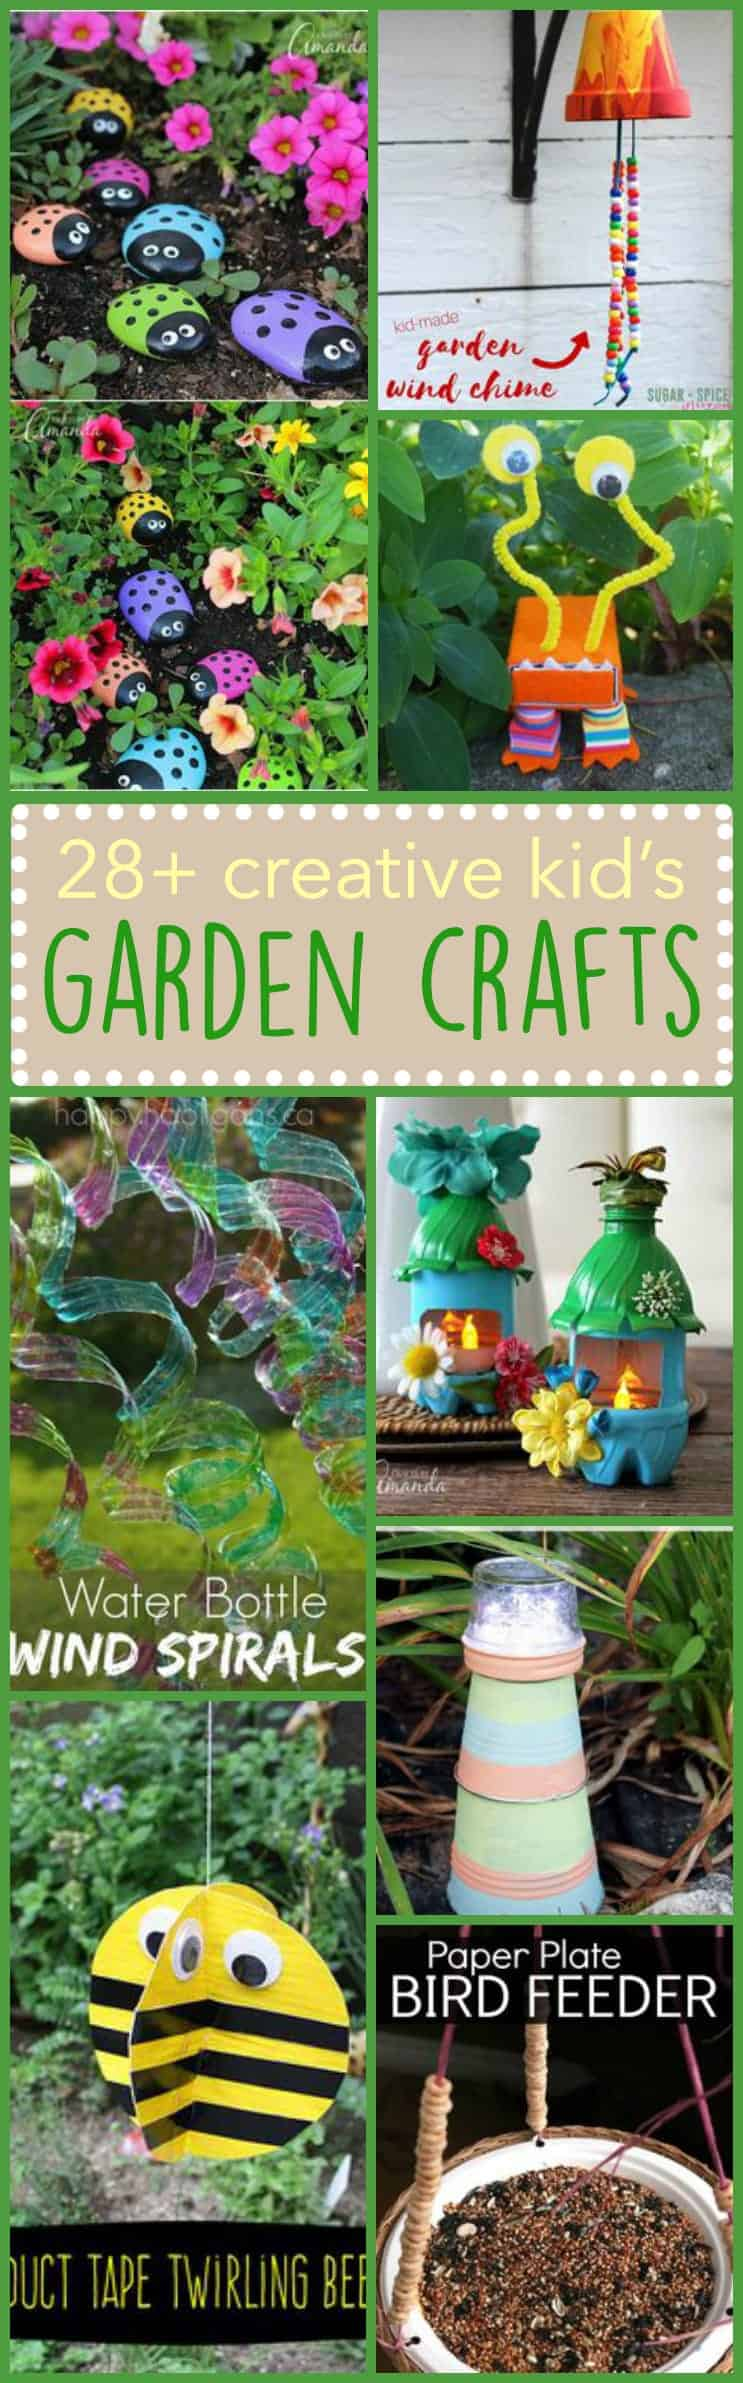 28 kids garden crafts you may also be interested in 27 fairy garden ideas 26 garden crafts you need to try this summer or 24 diy garden crafts